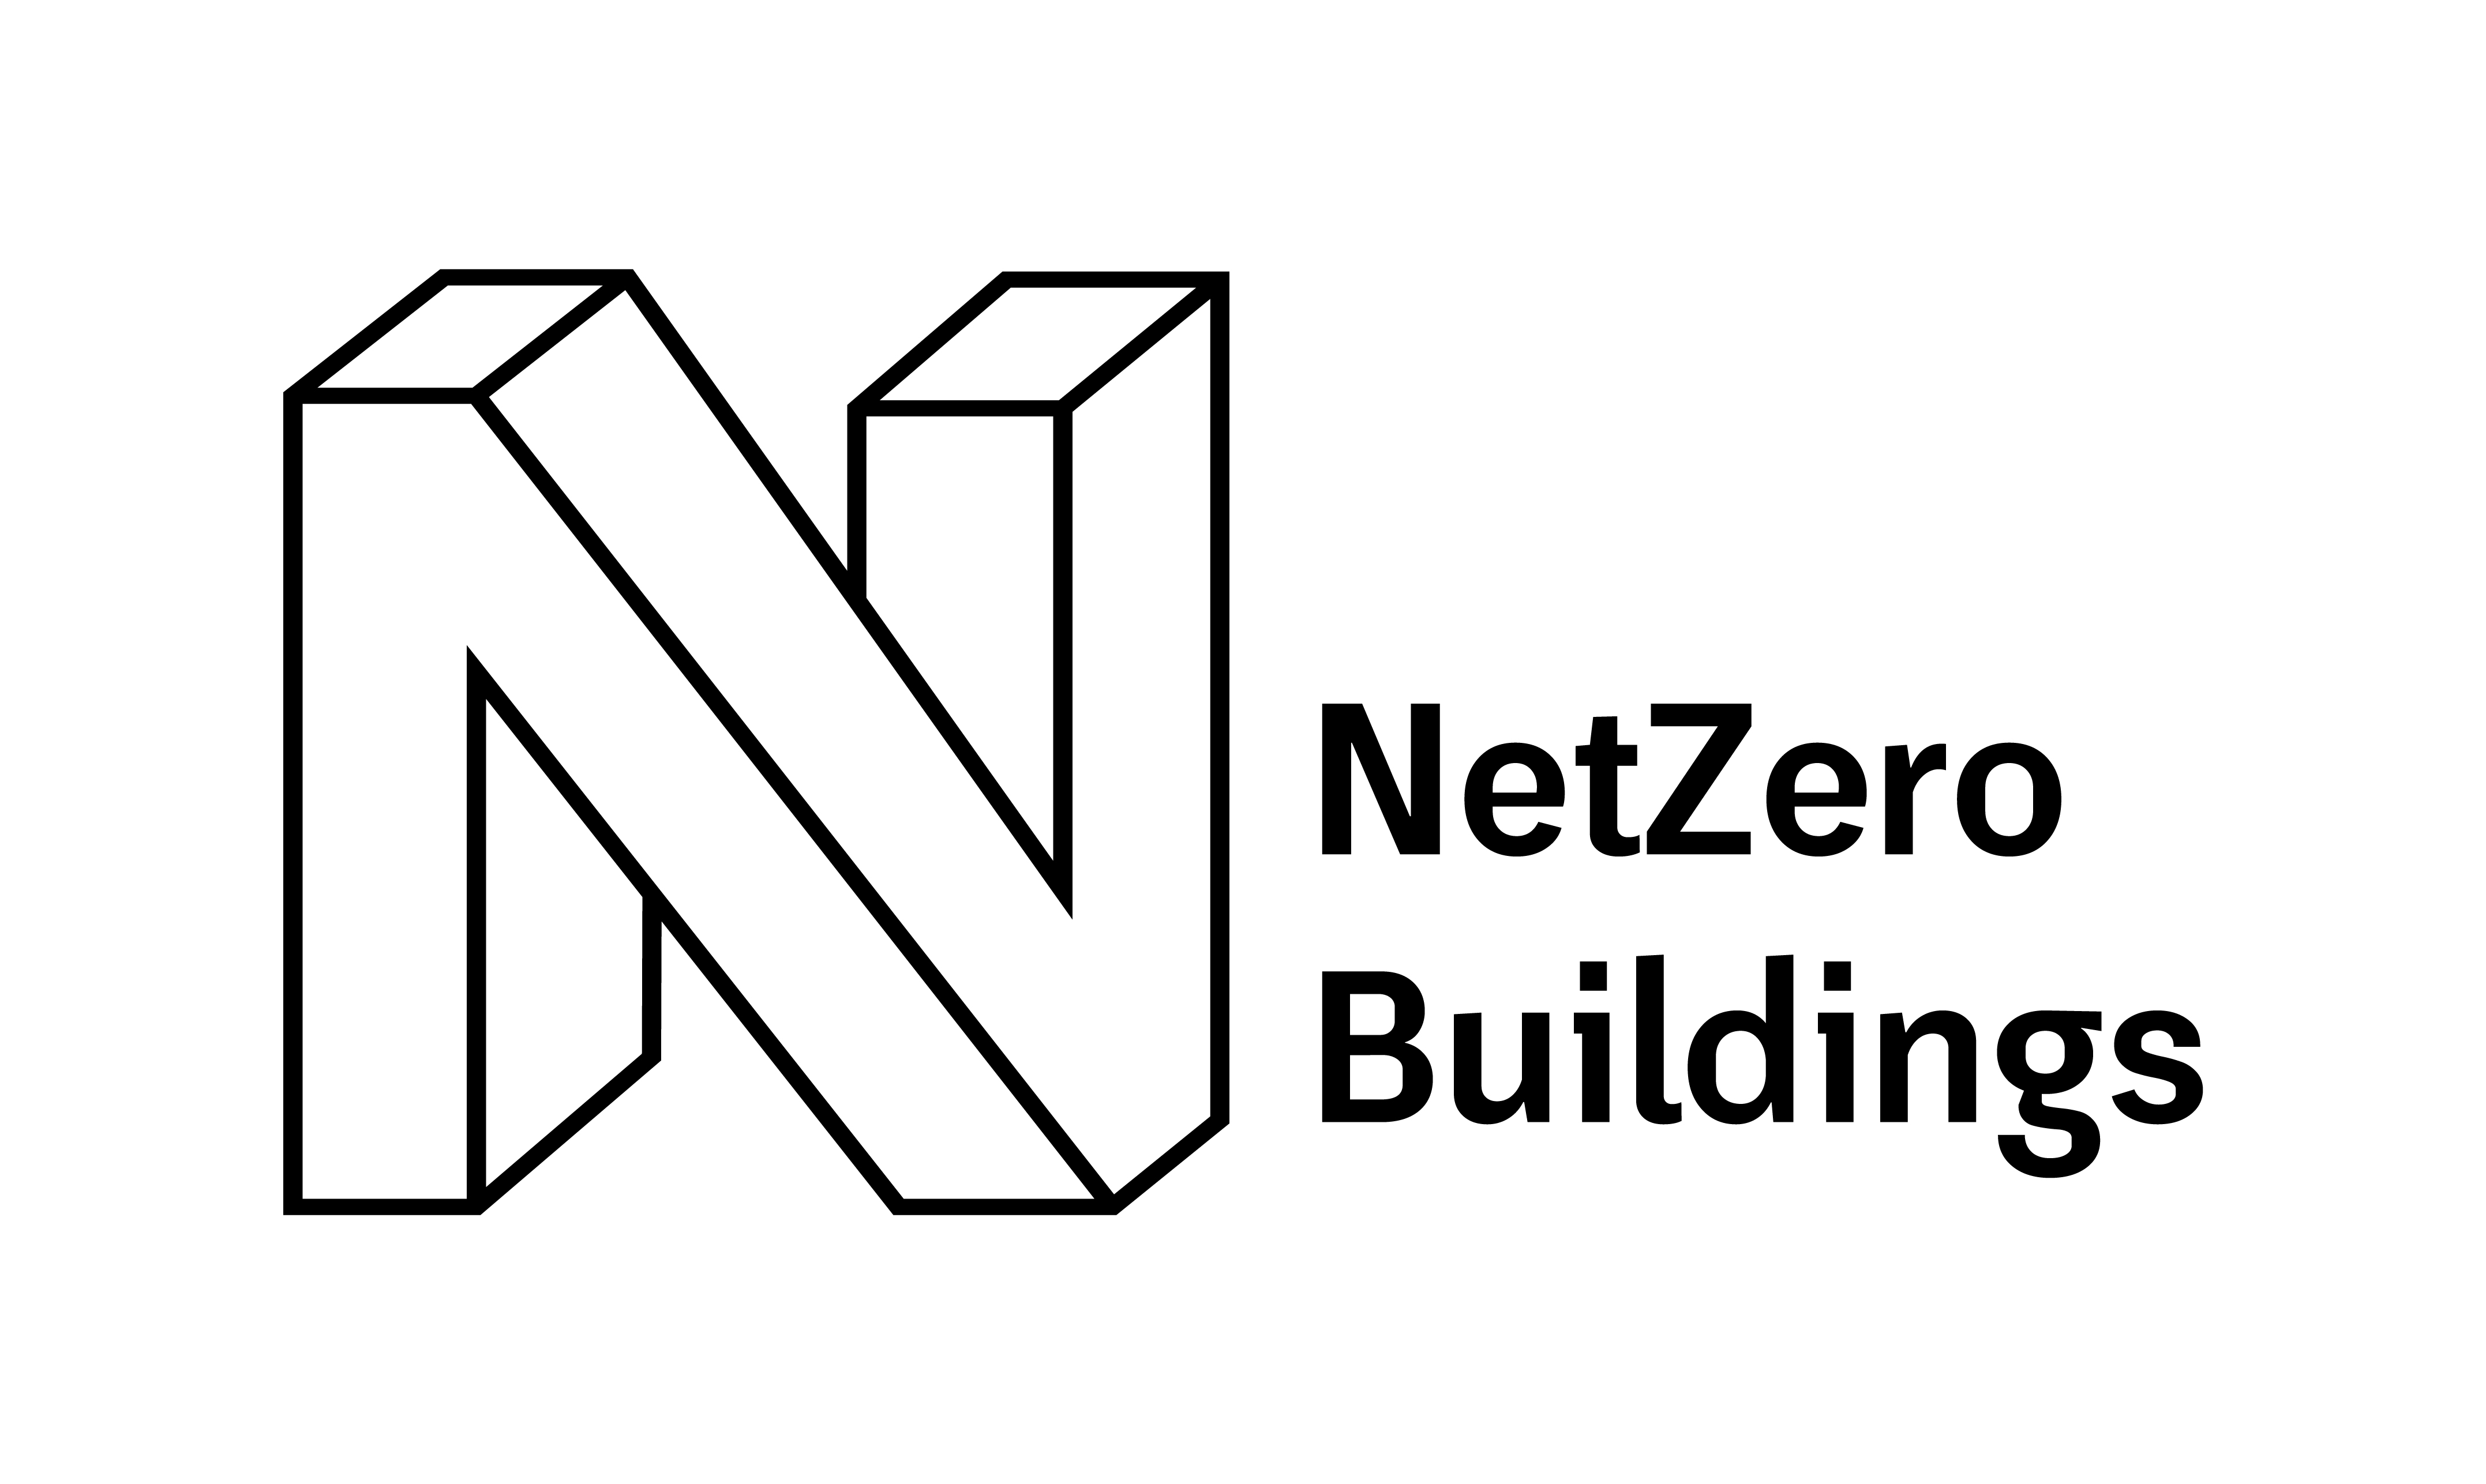 Net Zero Buildings